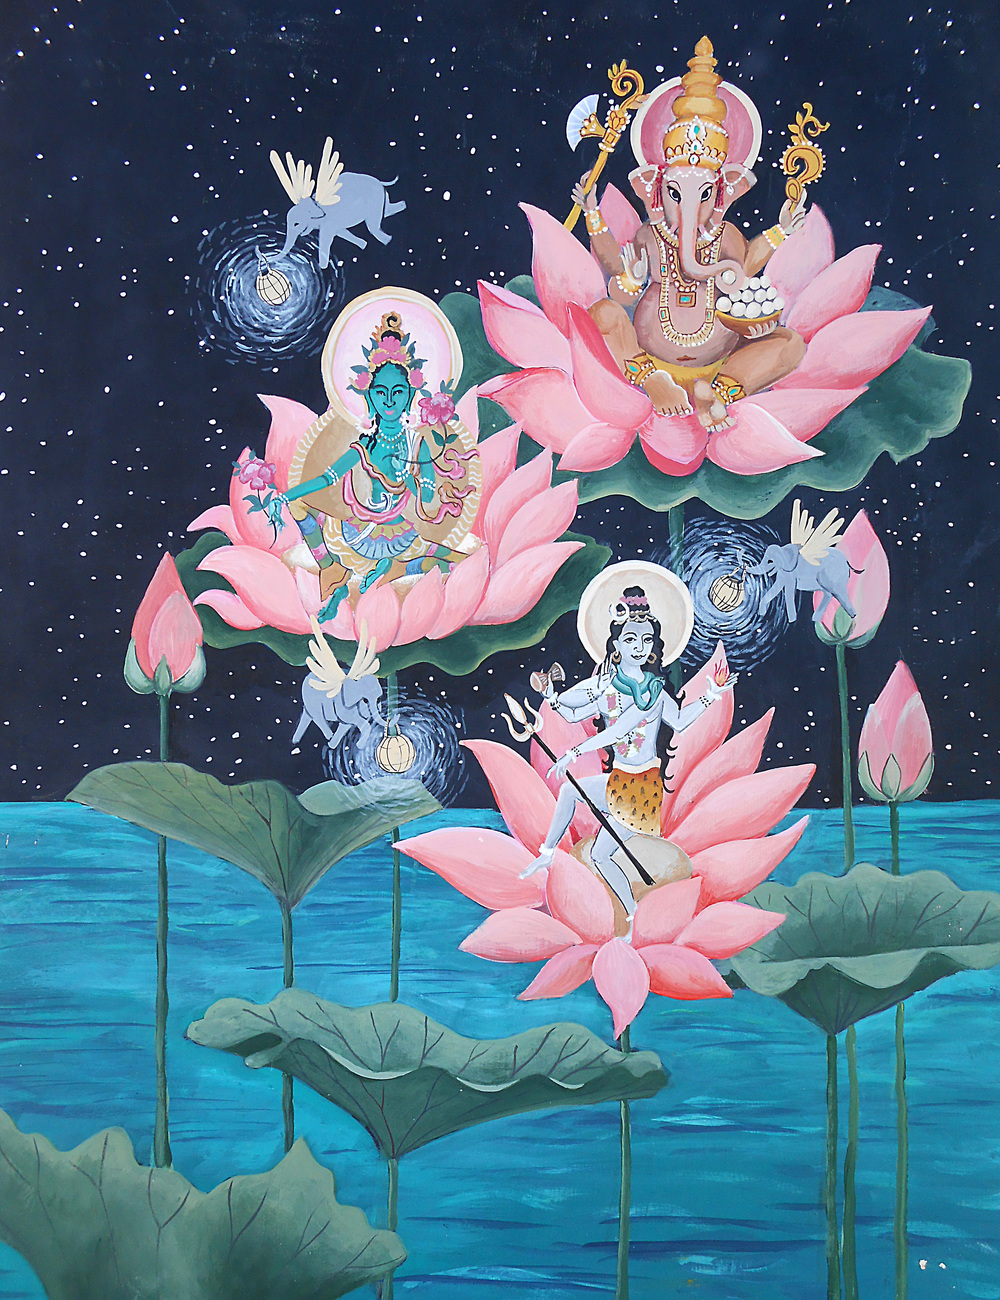 Here's an experimental painting of some buddhas having a celestial meeting on some lotus flowers. It was fun to paint Ganesh, Green tara, and Shiva all in one painting. My favorite part is the flying elephants with lanterns.